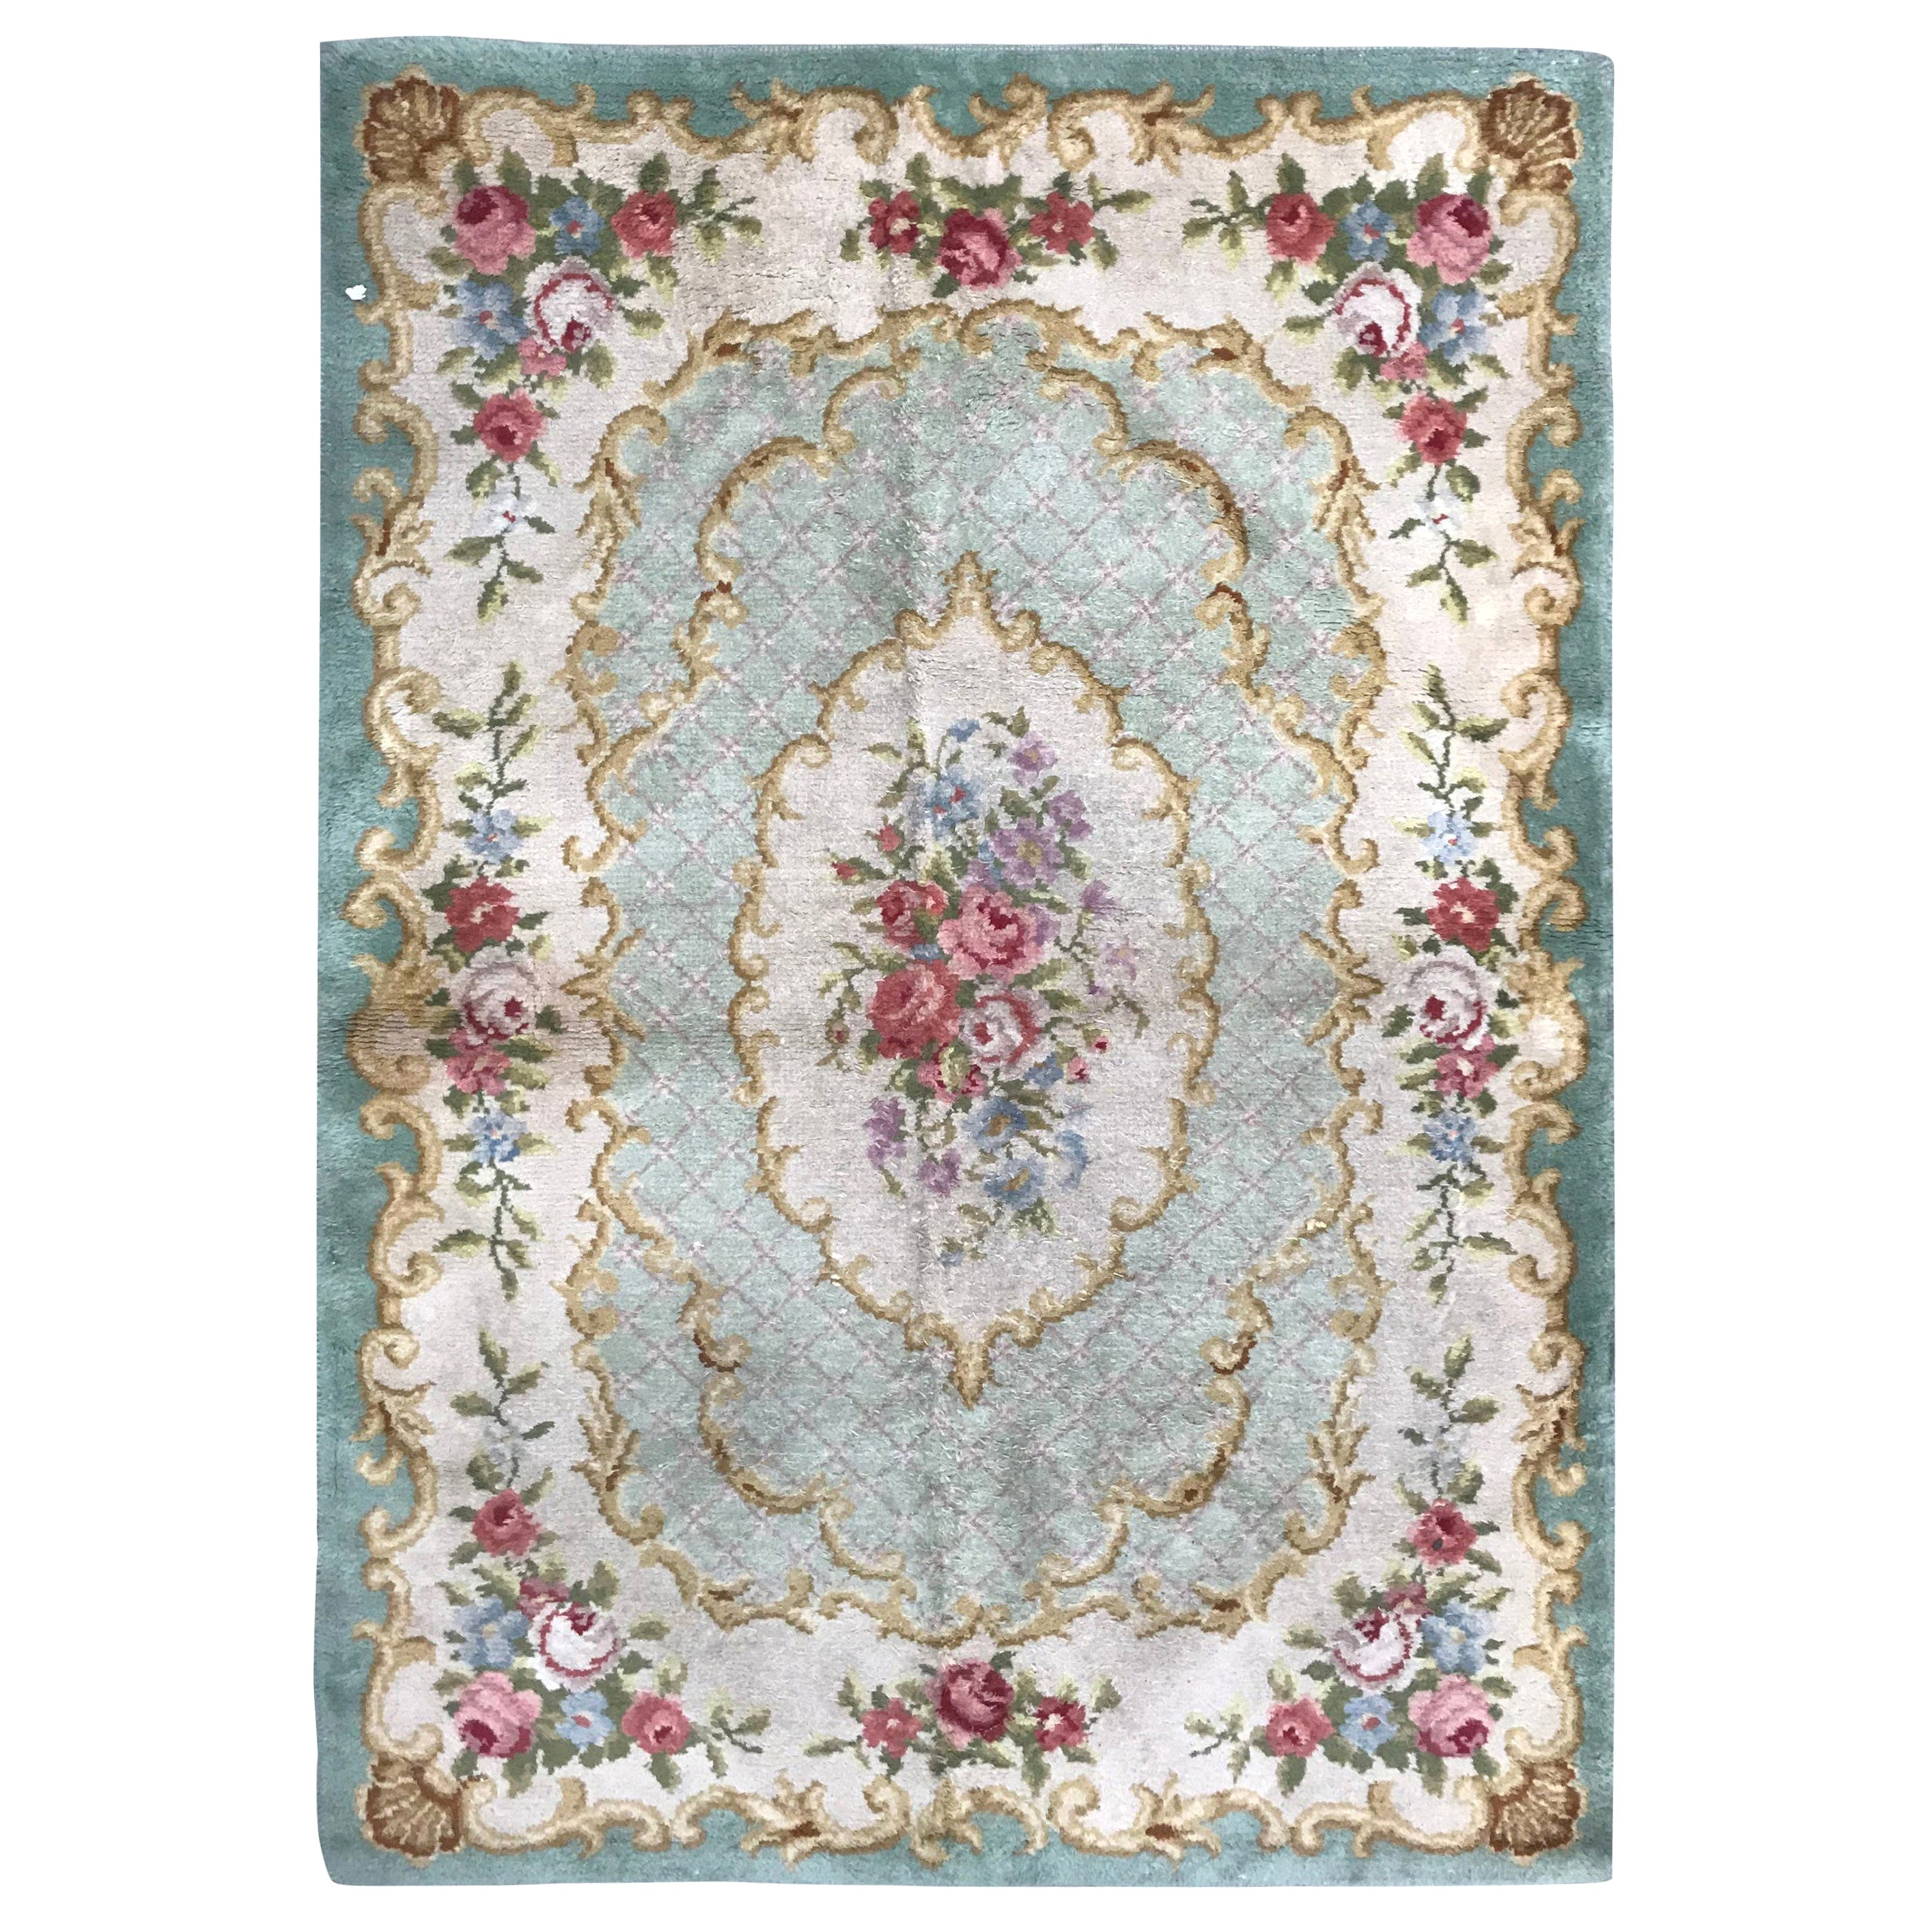 Antique Early 20th Century Aubusson Savonnerie Rug